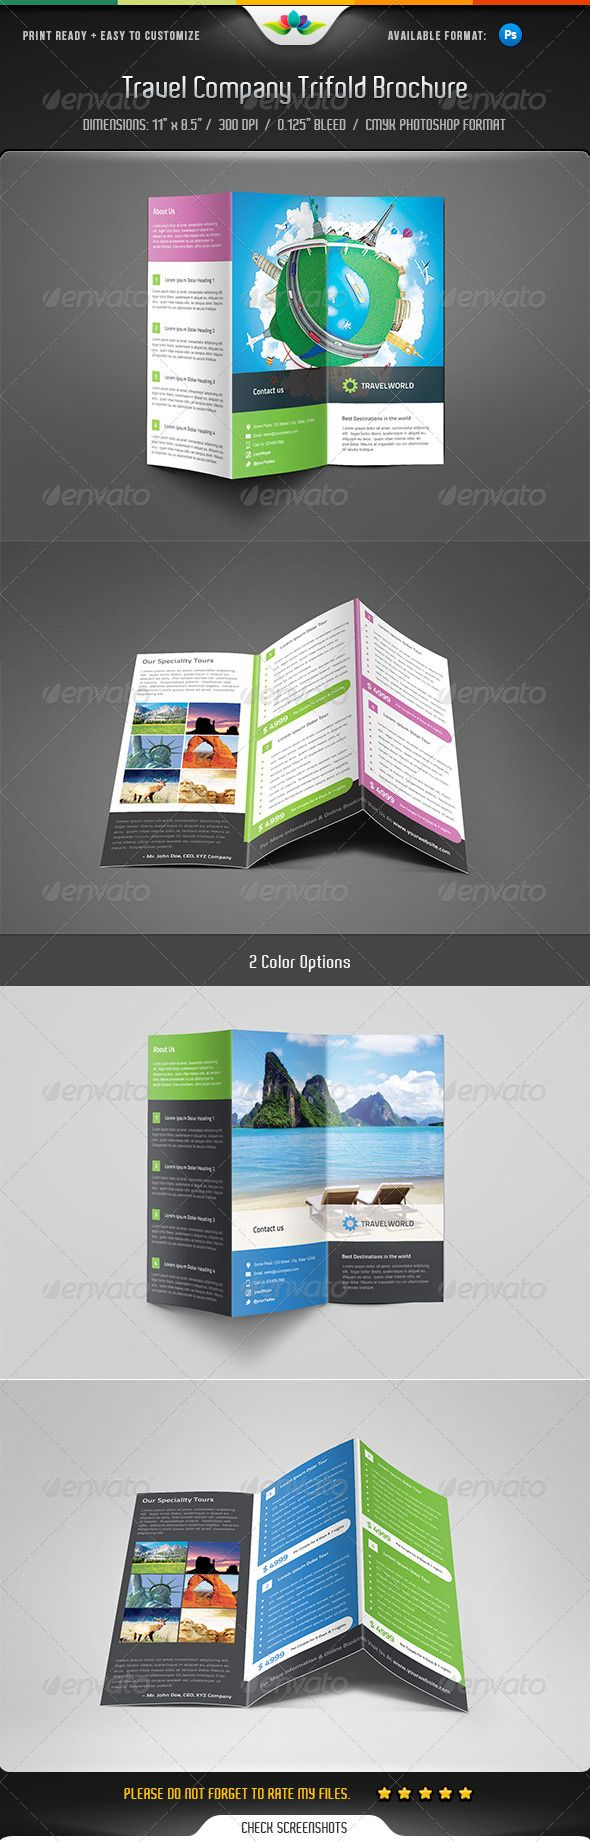 Best Zfold Brochure Inspiration Images On Pinterest - Z fold brochure template